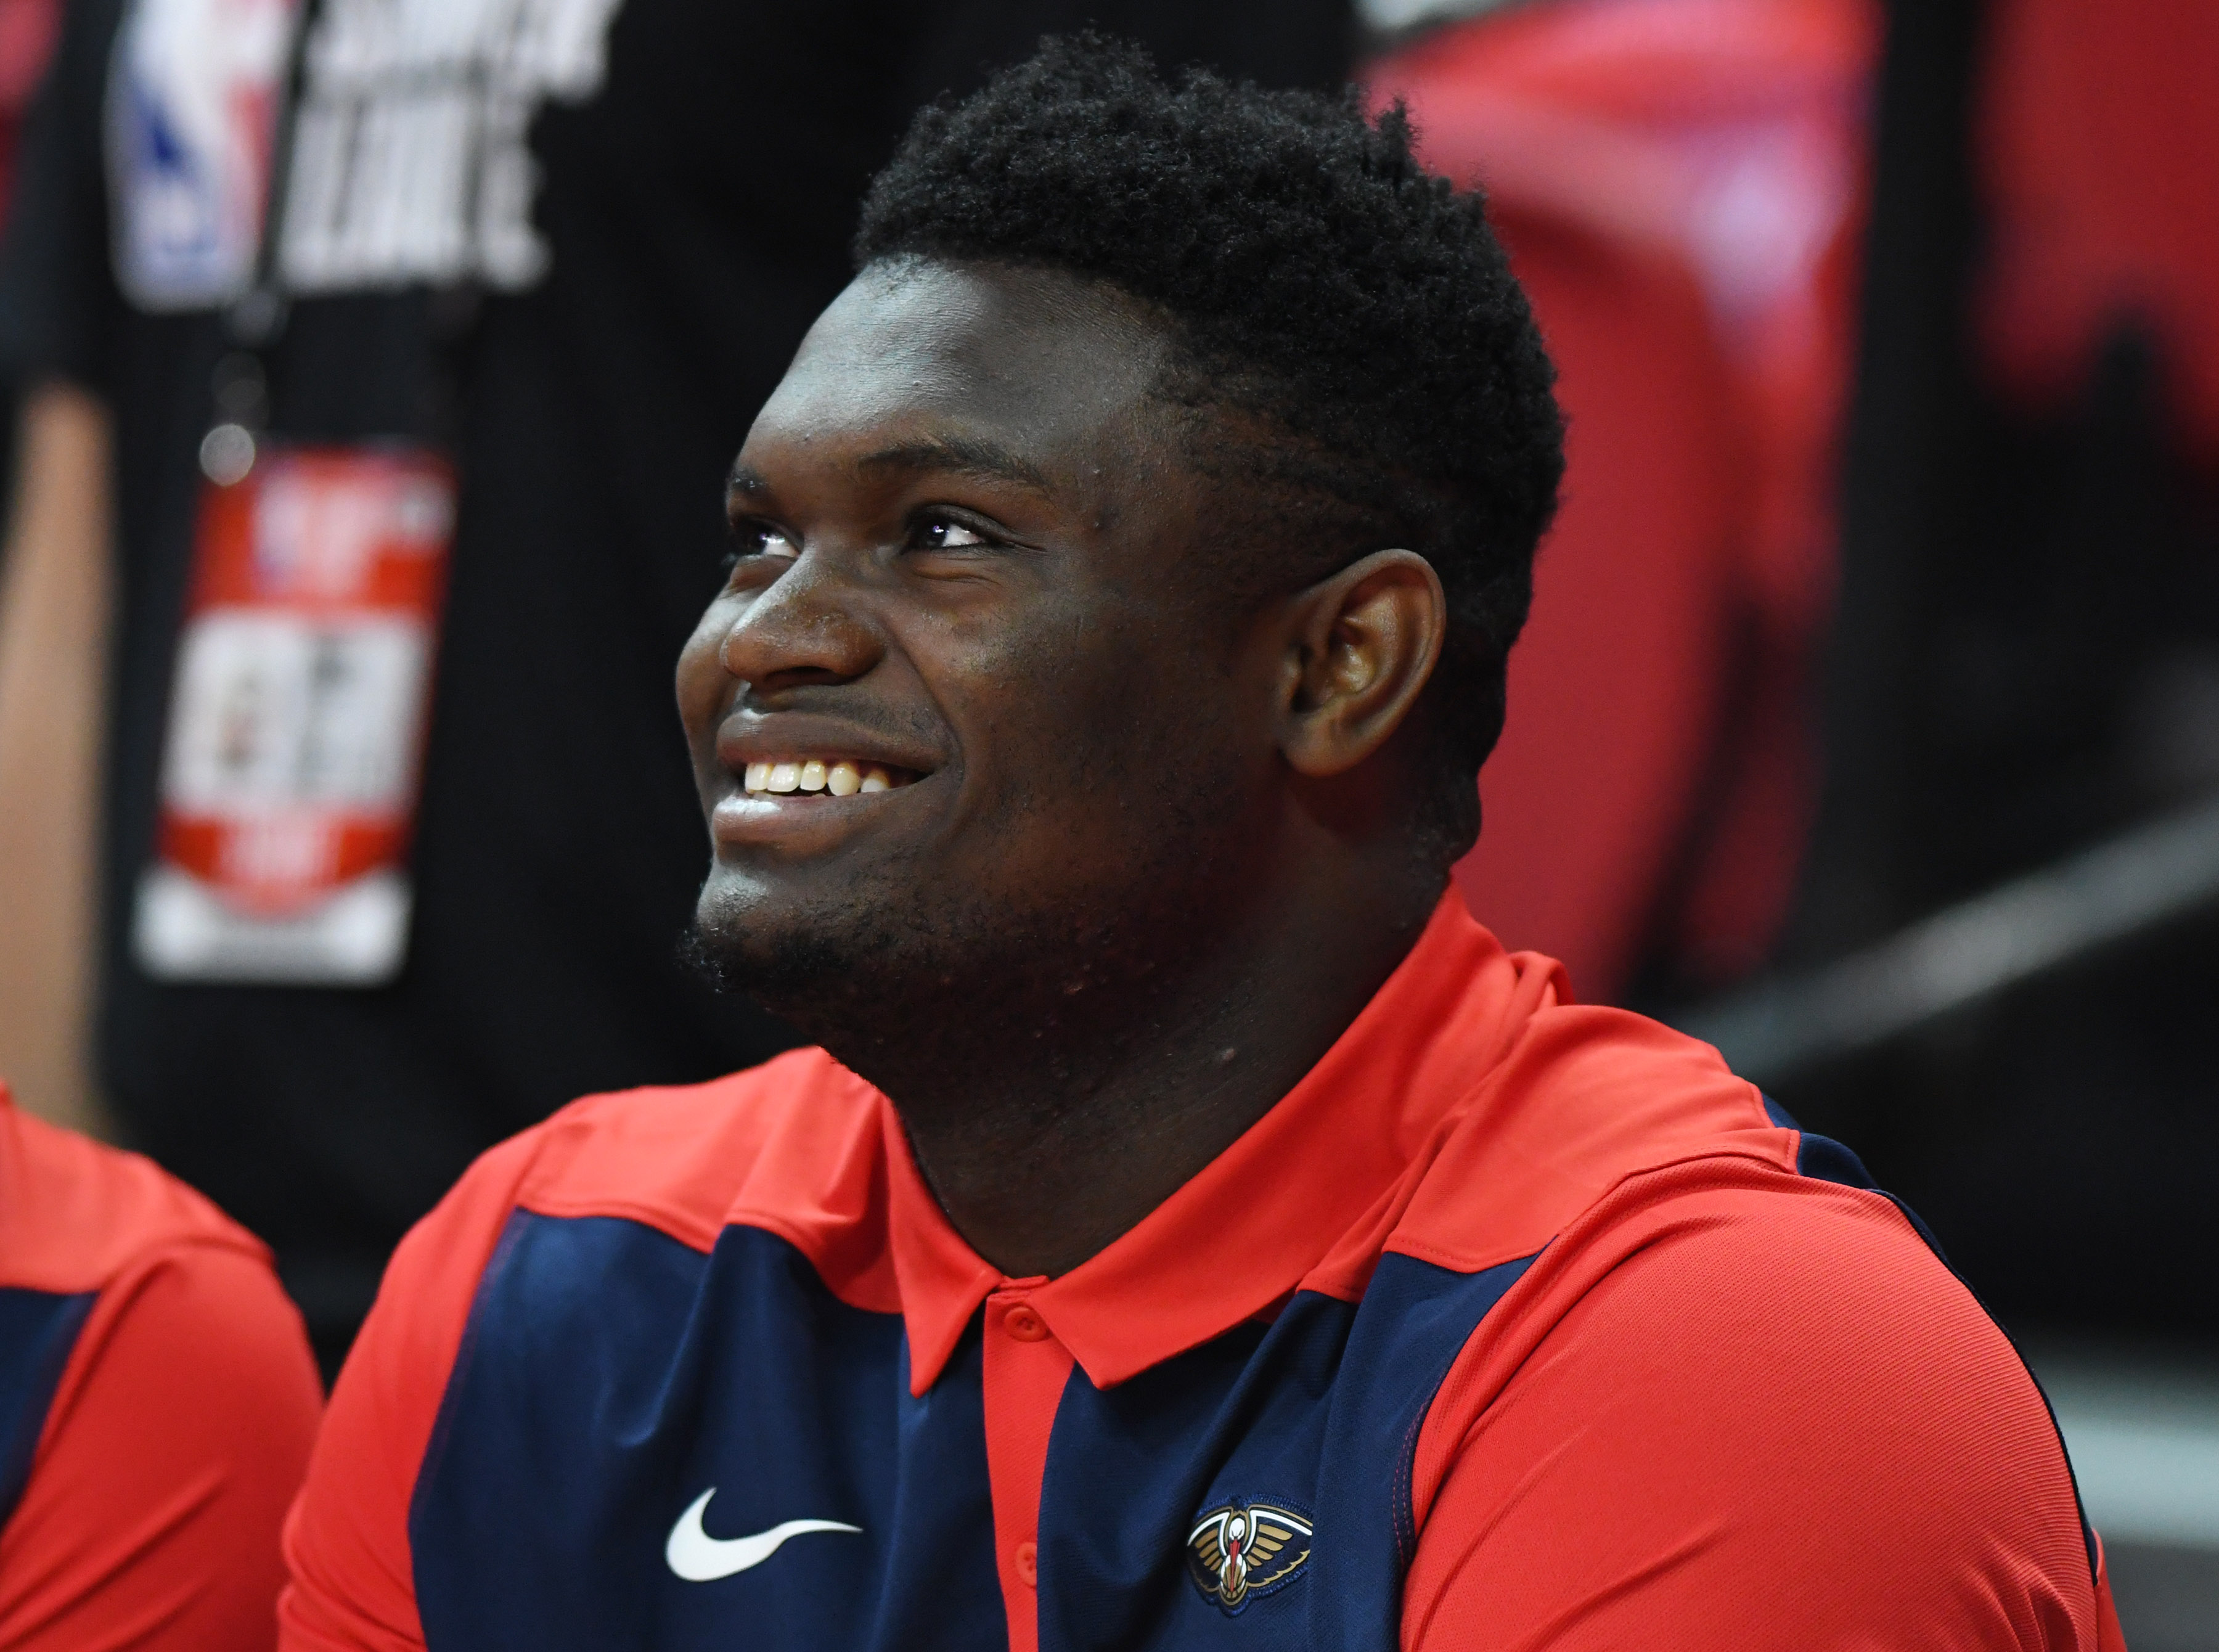 Look: Zion WIlliamson rookie card somehow fetching over $21K